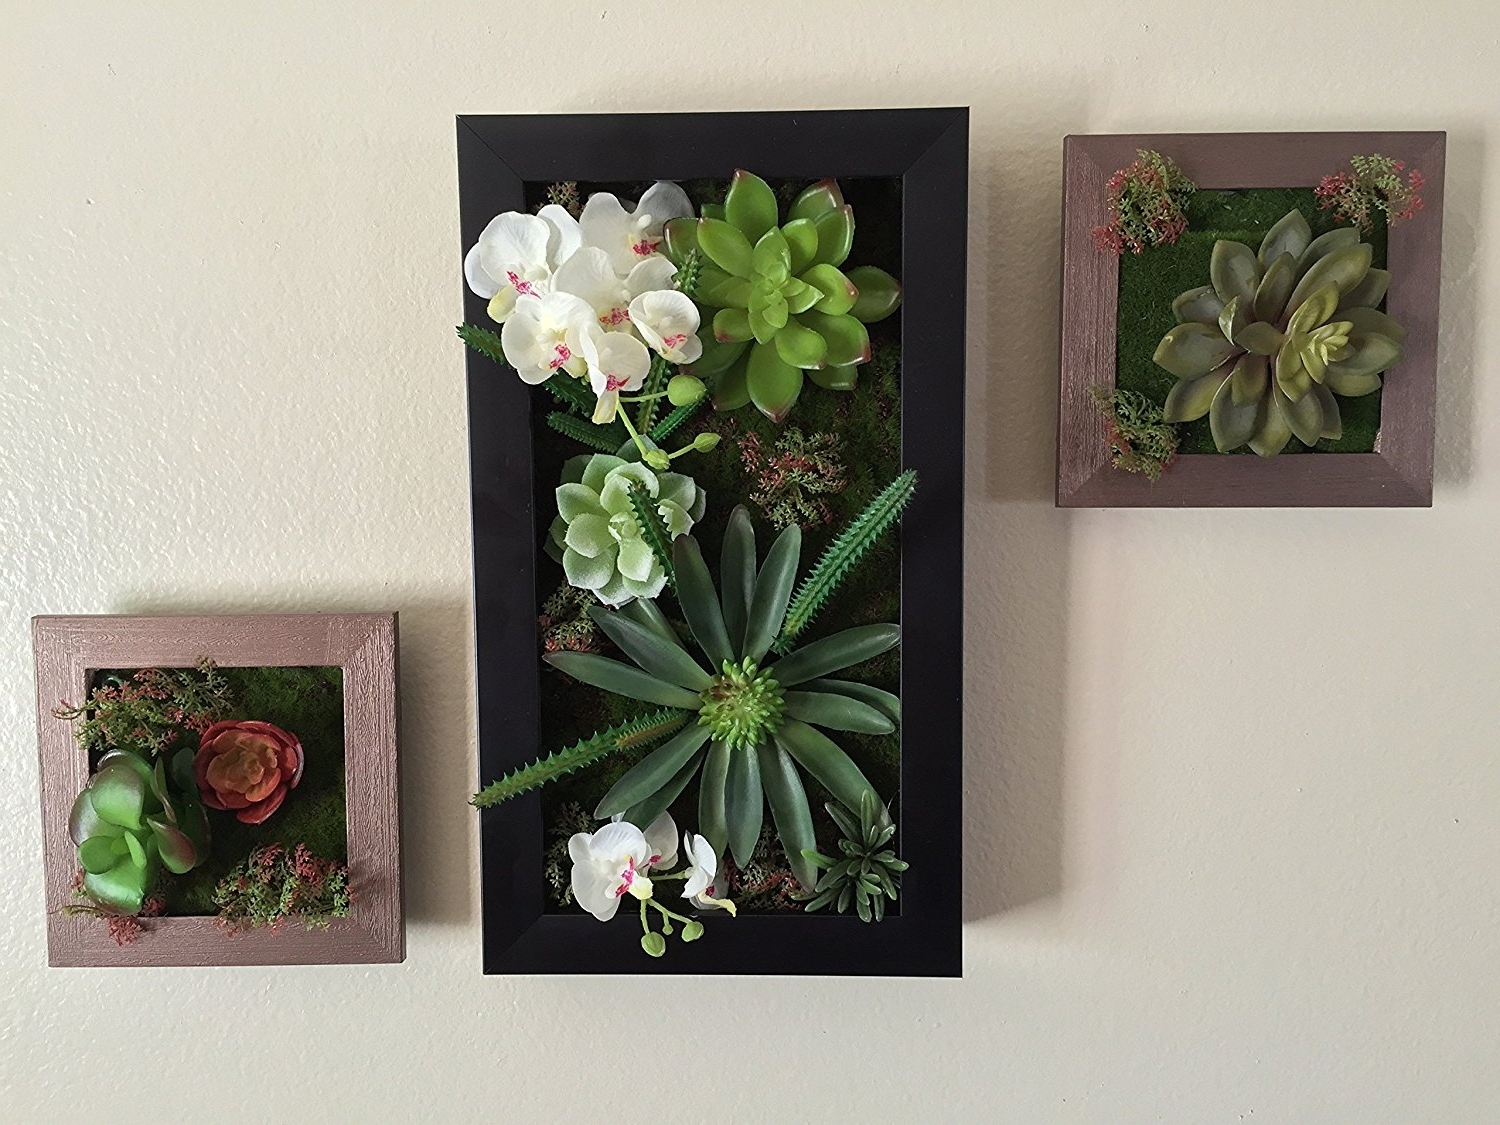 Amazon: 3D Artificial Plant Simulation Flower Frame Wall Decor Within Famous Floral & Plant Wall Art (View 2 of 15)